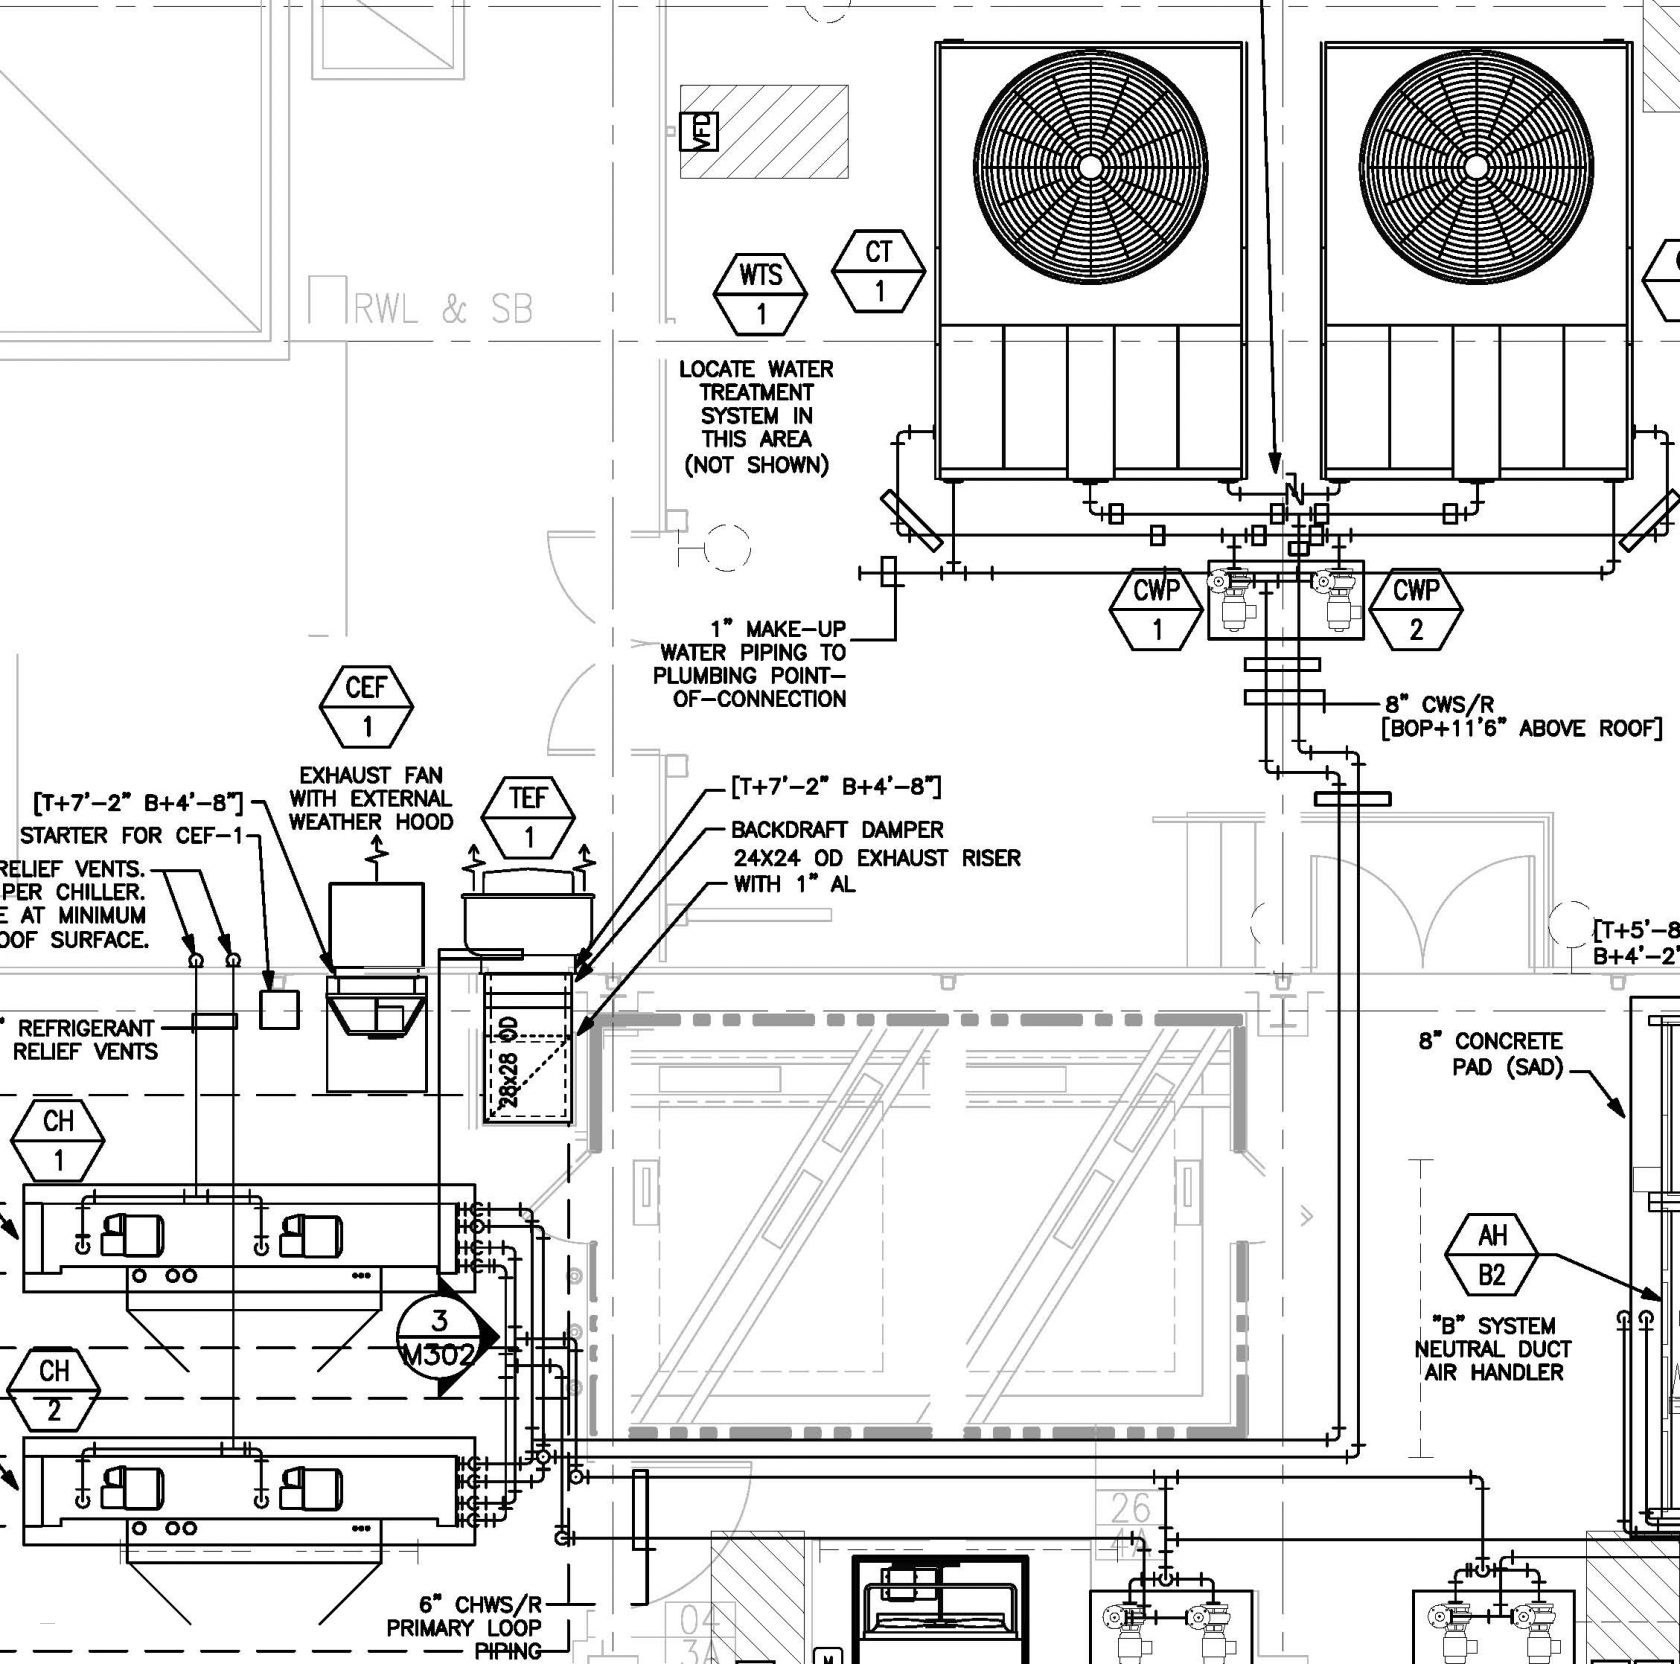 Wiring Diagram for Portable Generator to House - King Generator Wiring  Diagram Valid Wiring Diagram Portable